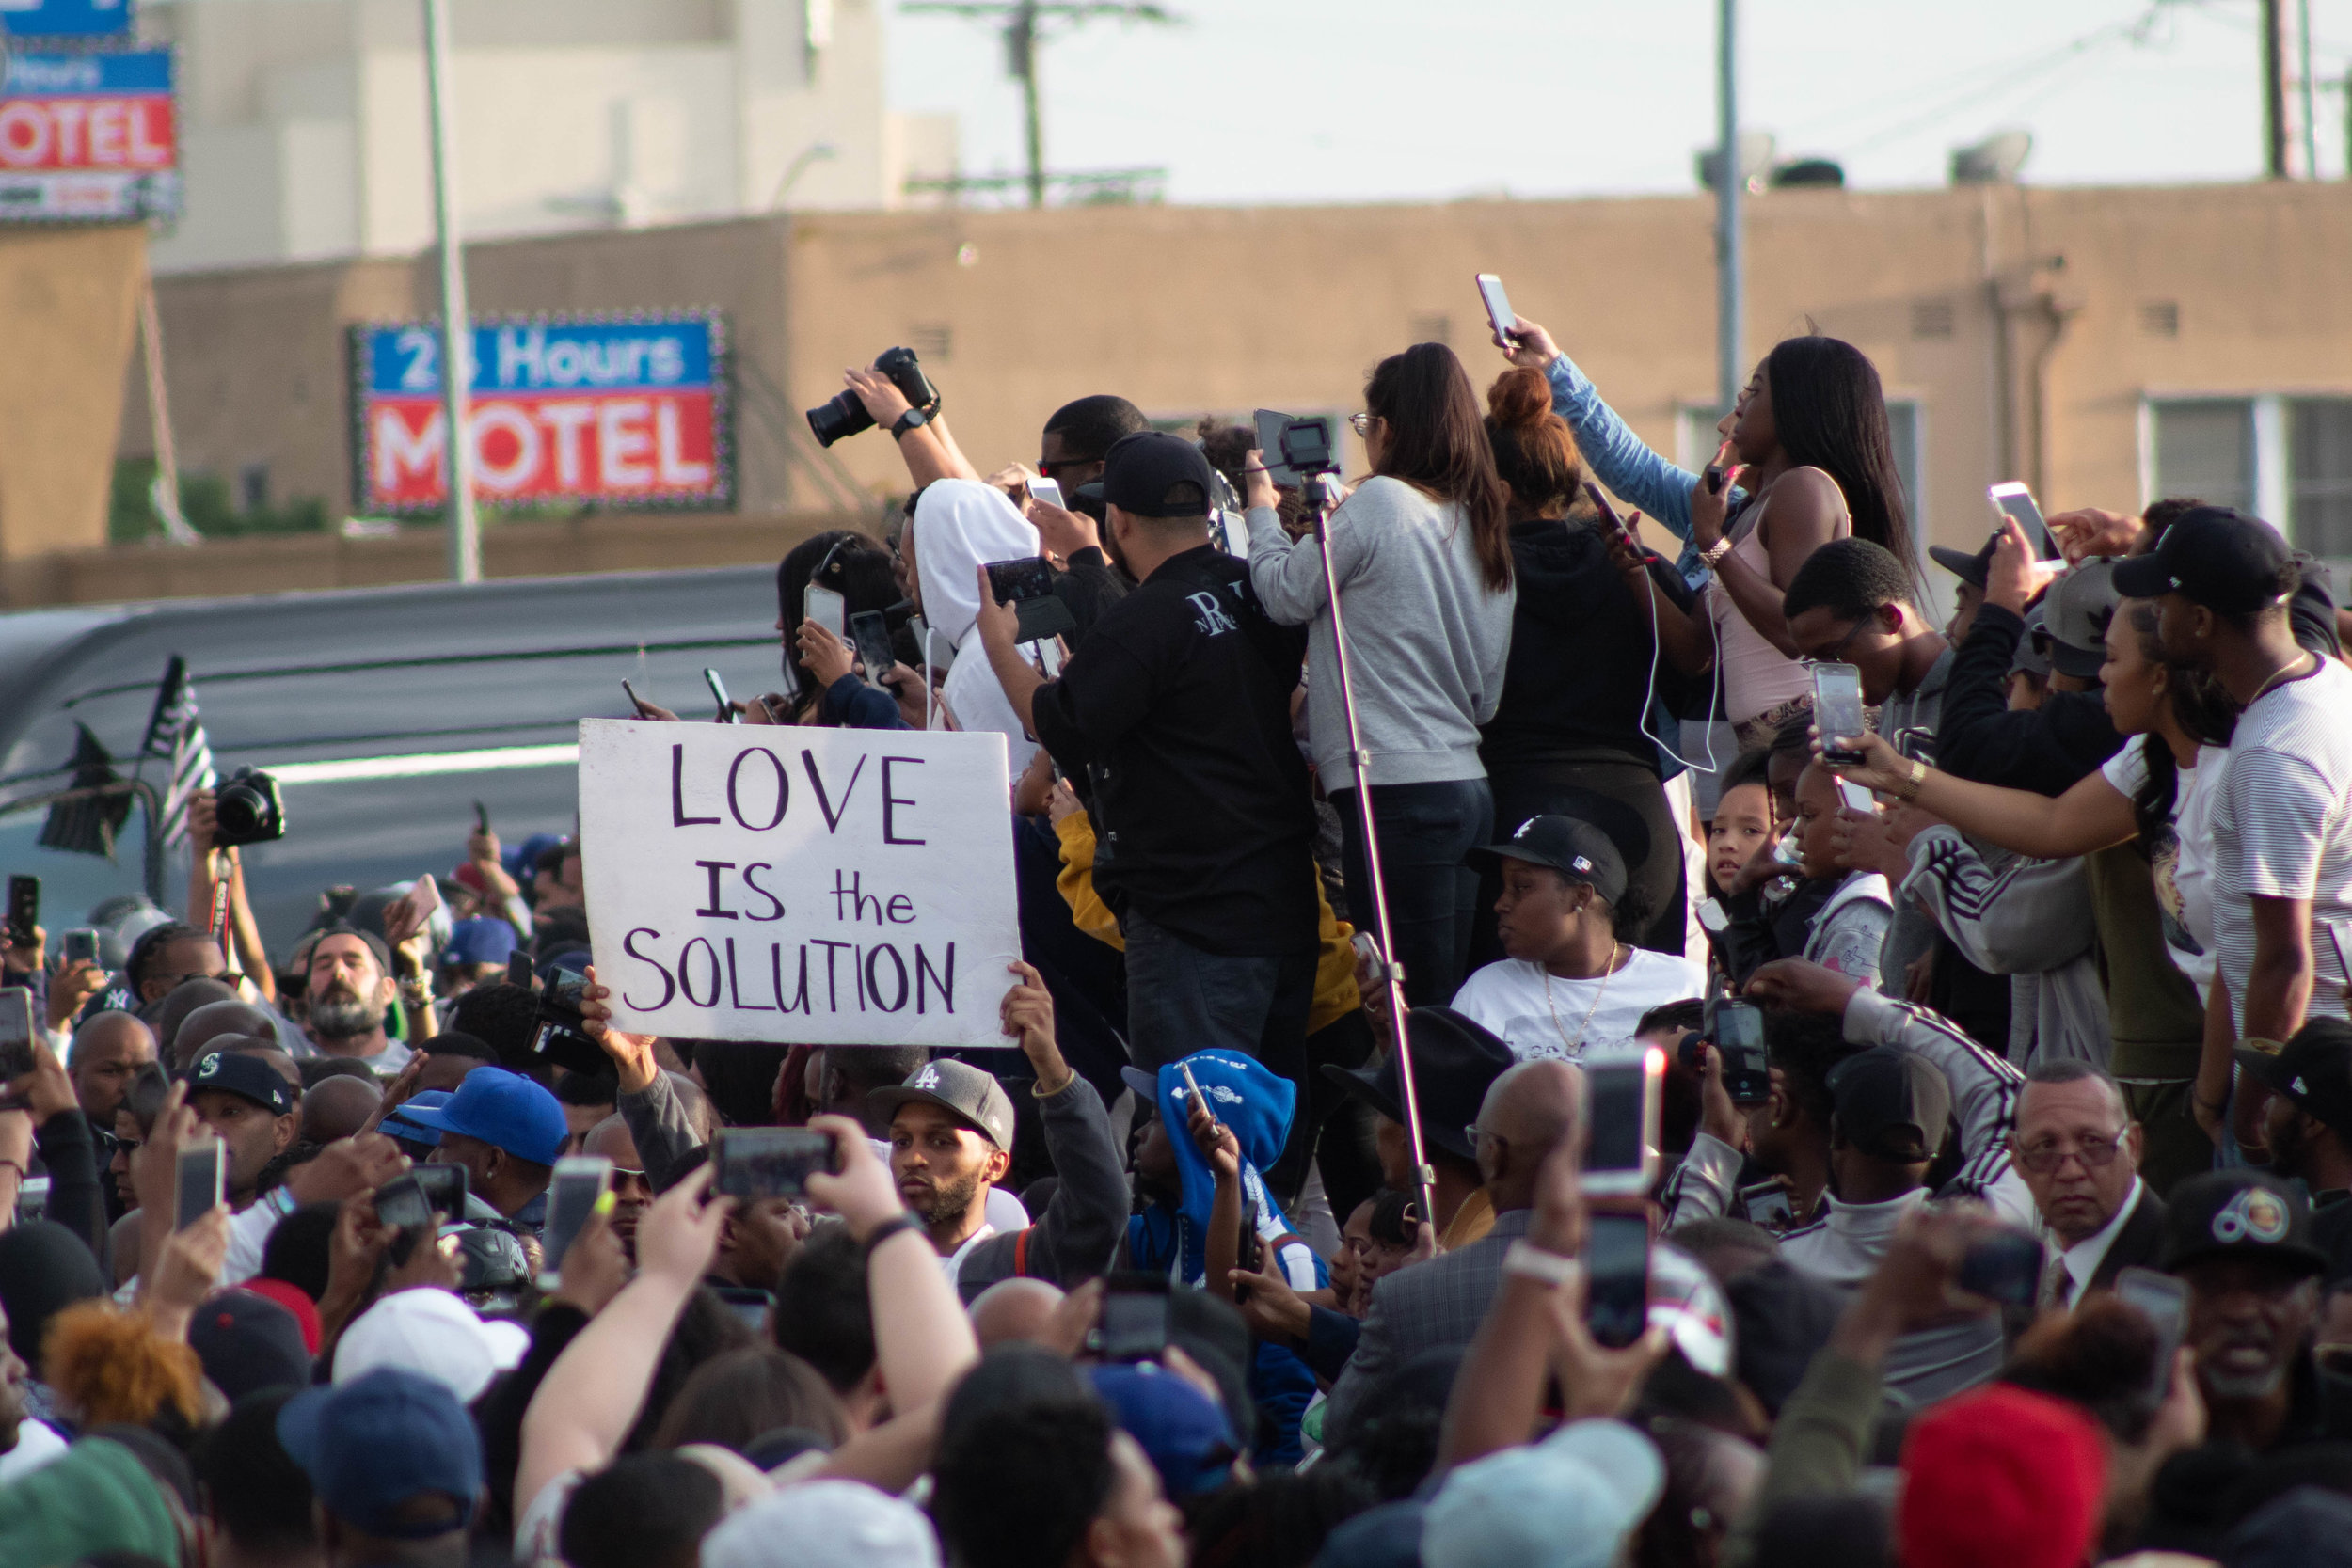 A crowd that filled the intersection of Crenshaw Boulevard and Slauson Avenue in South Los Angeles, California during the funeral procession of the late rapper Nipsey Hussle on Thursday, April 11, 2019. (Catherine Lima/Corsair Staff)